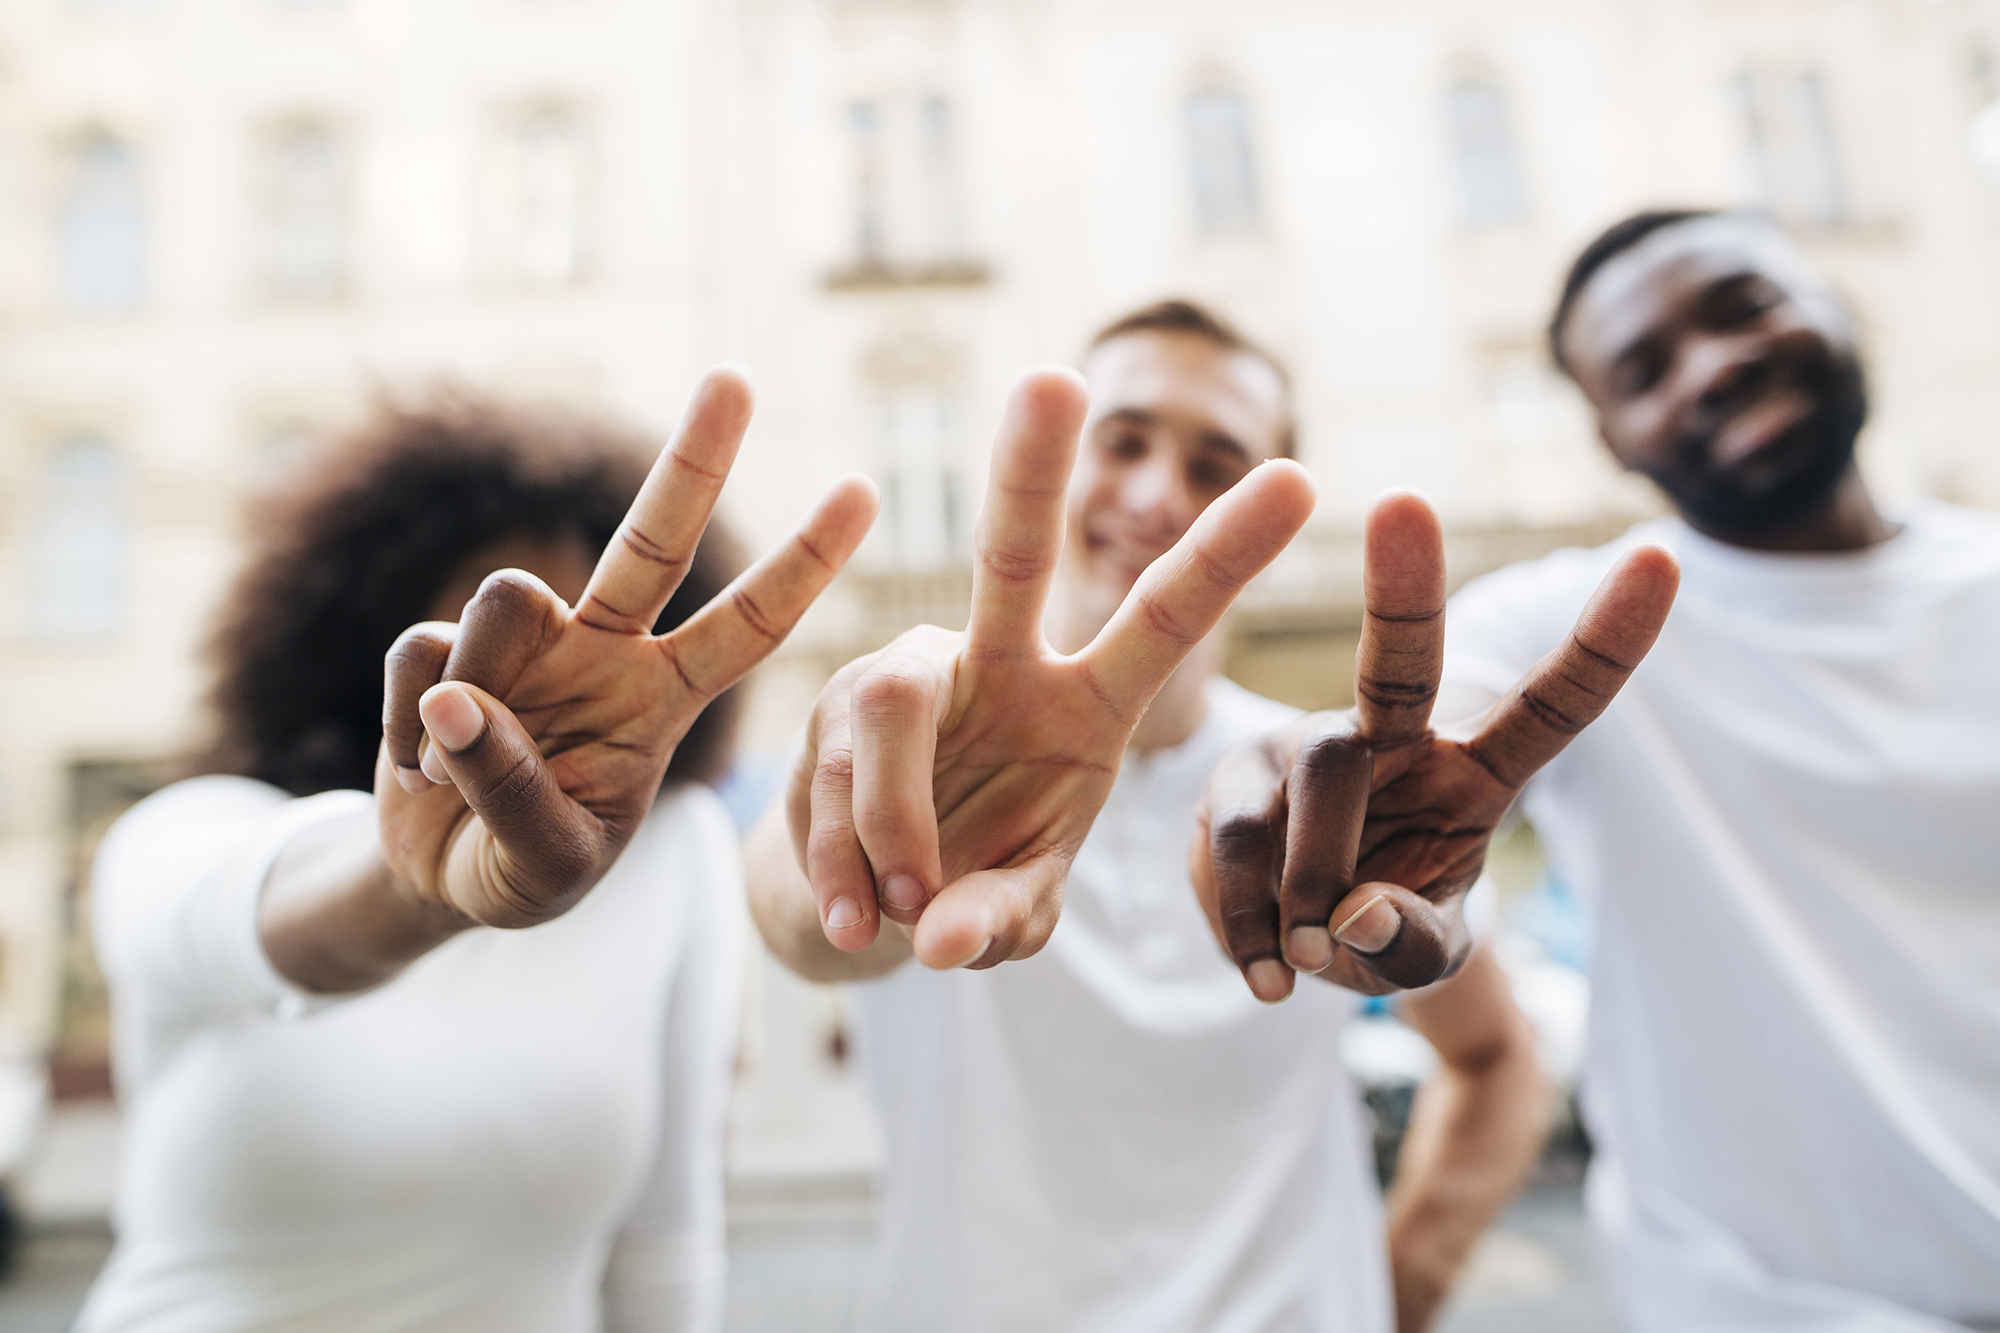 friends showing peace sign